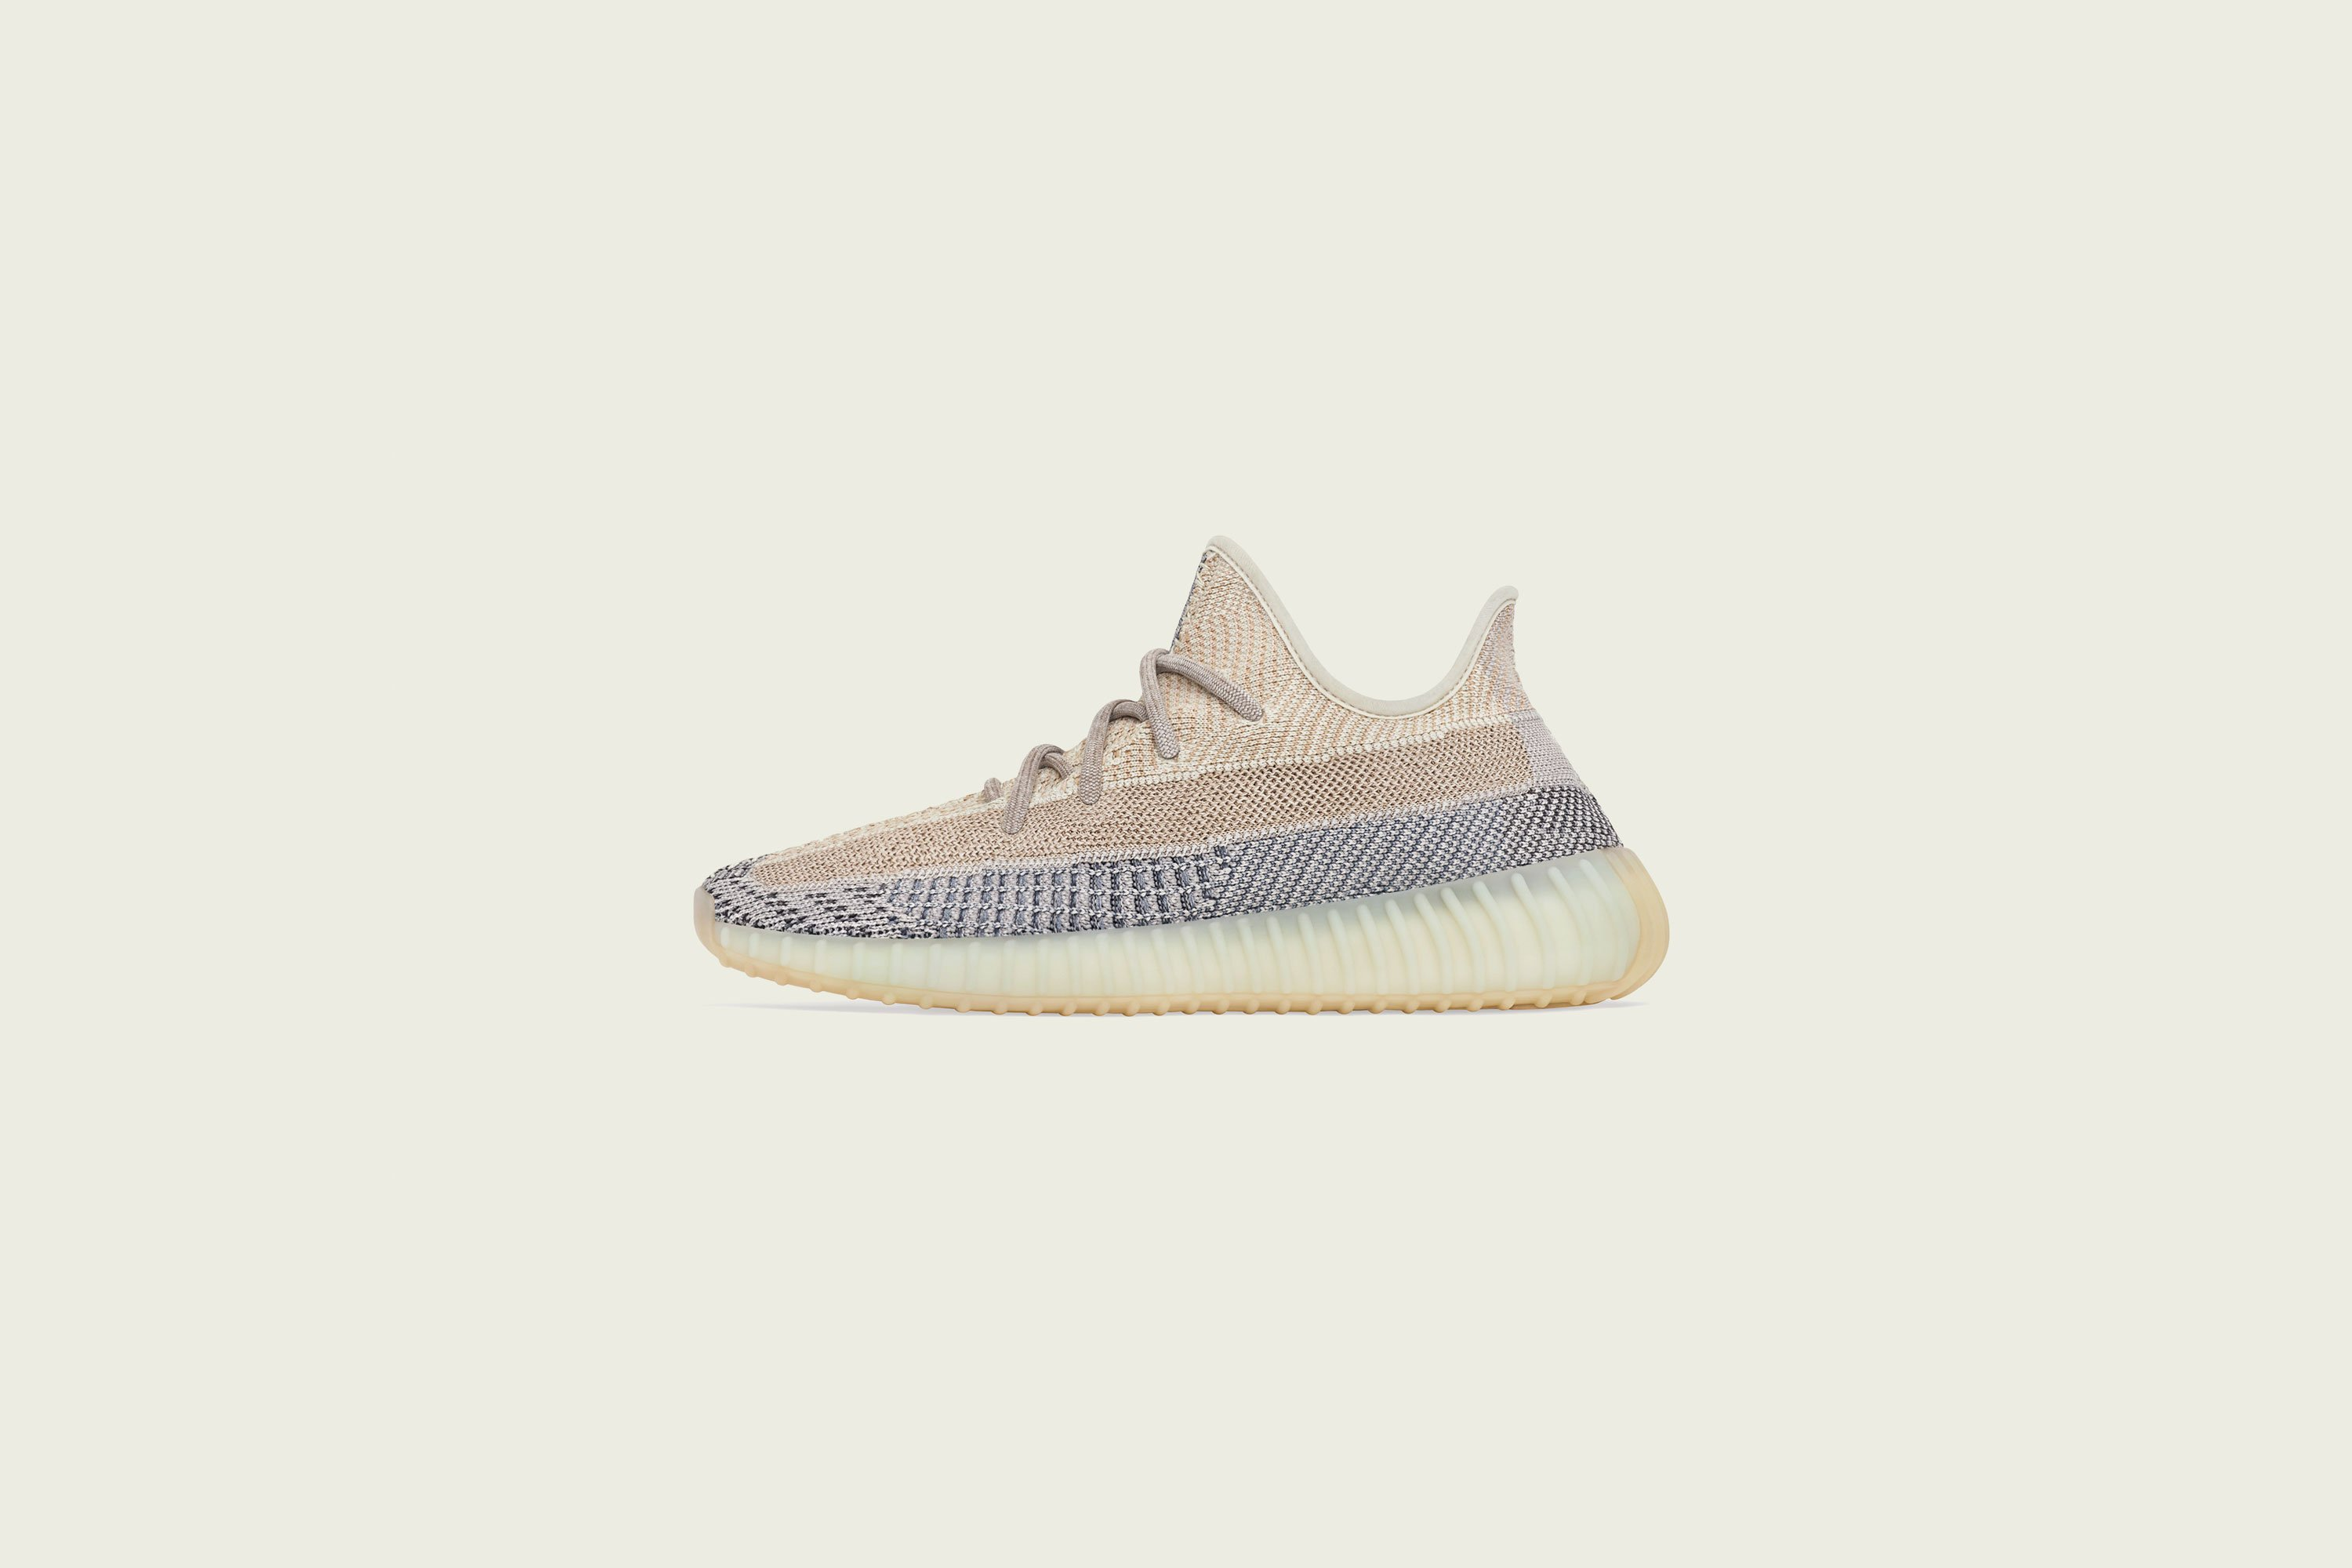 adidas - Yeezy Boost 350v2 - Ash Pearl - Up There